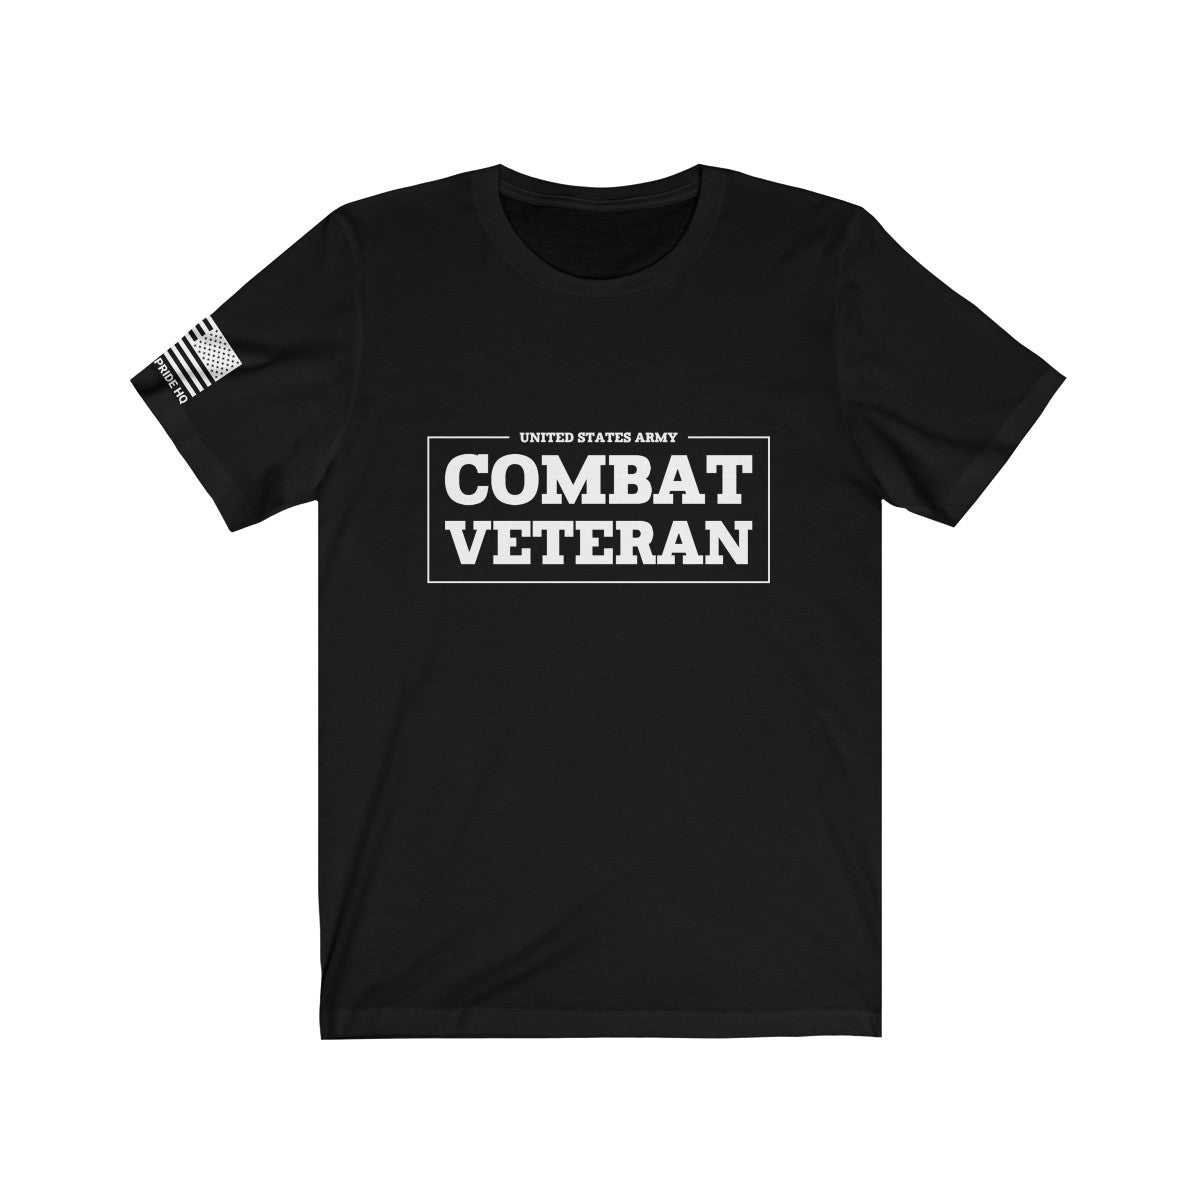 United States Army Combat Veteran Men's T-Shirt